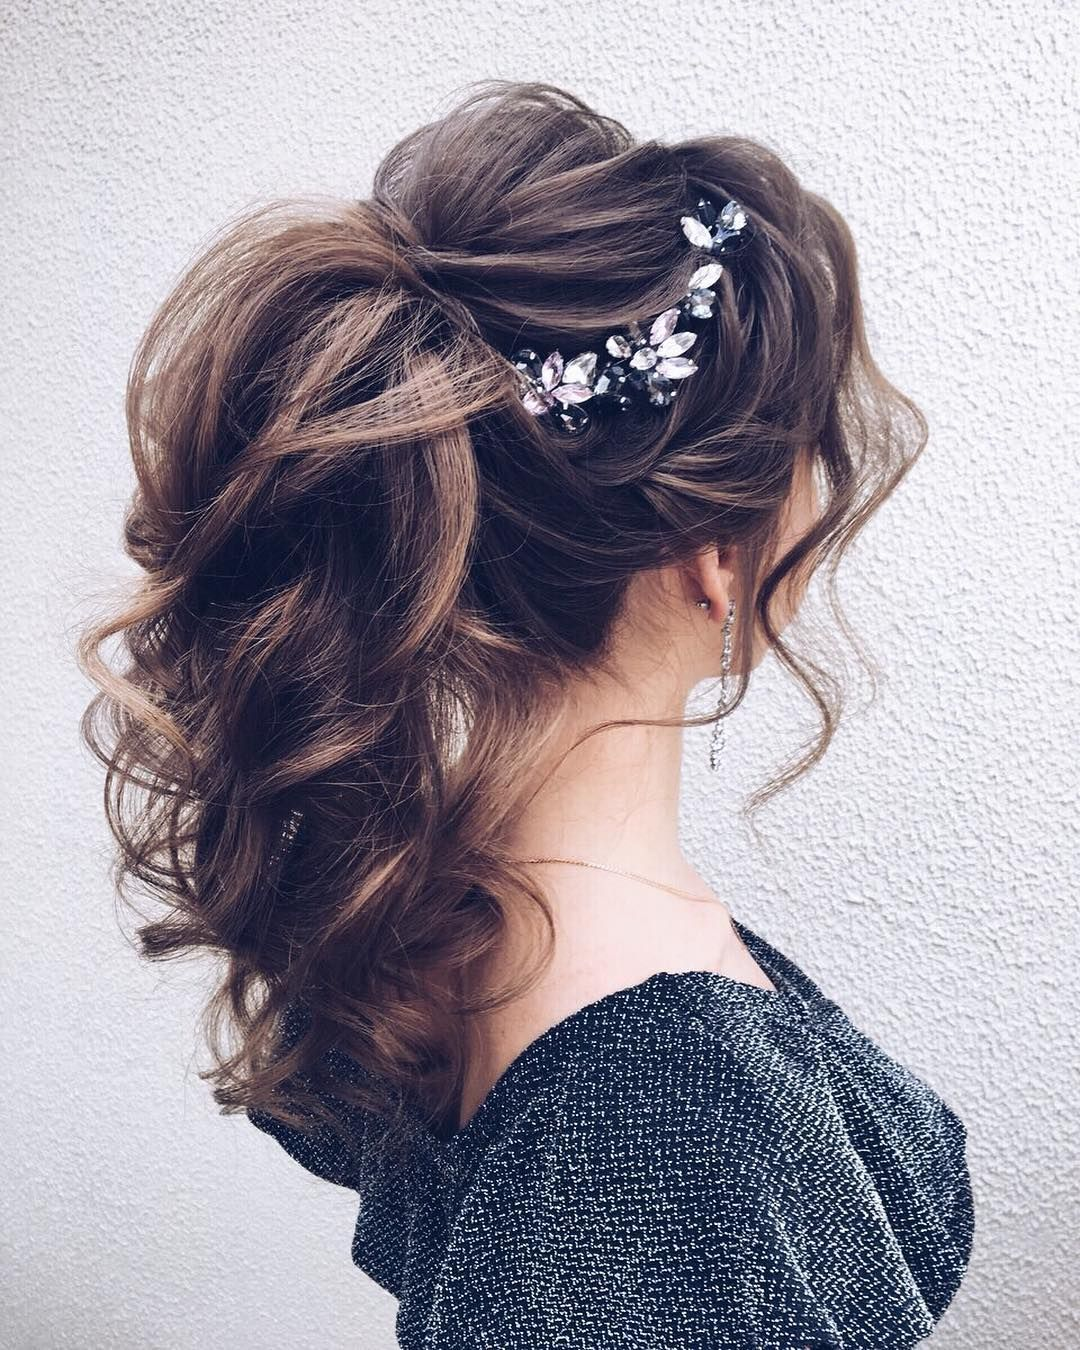 63 Perfect Hairdo Ideas For A Flawless Wedding Hairstyle: 16+ Prodigious Girls Hairstyles Updos Ideas (con Imágenes